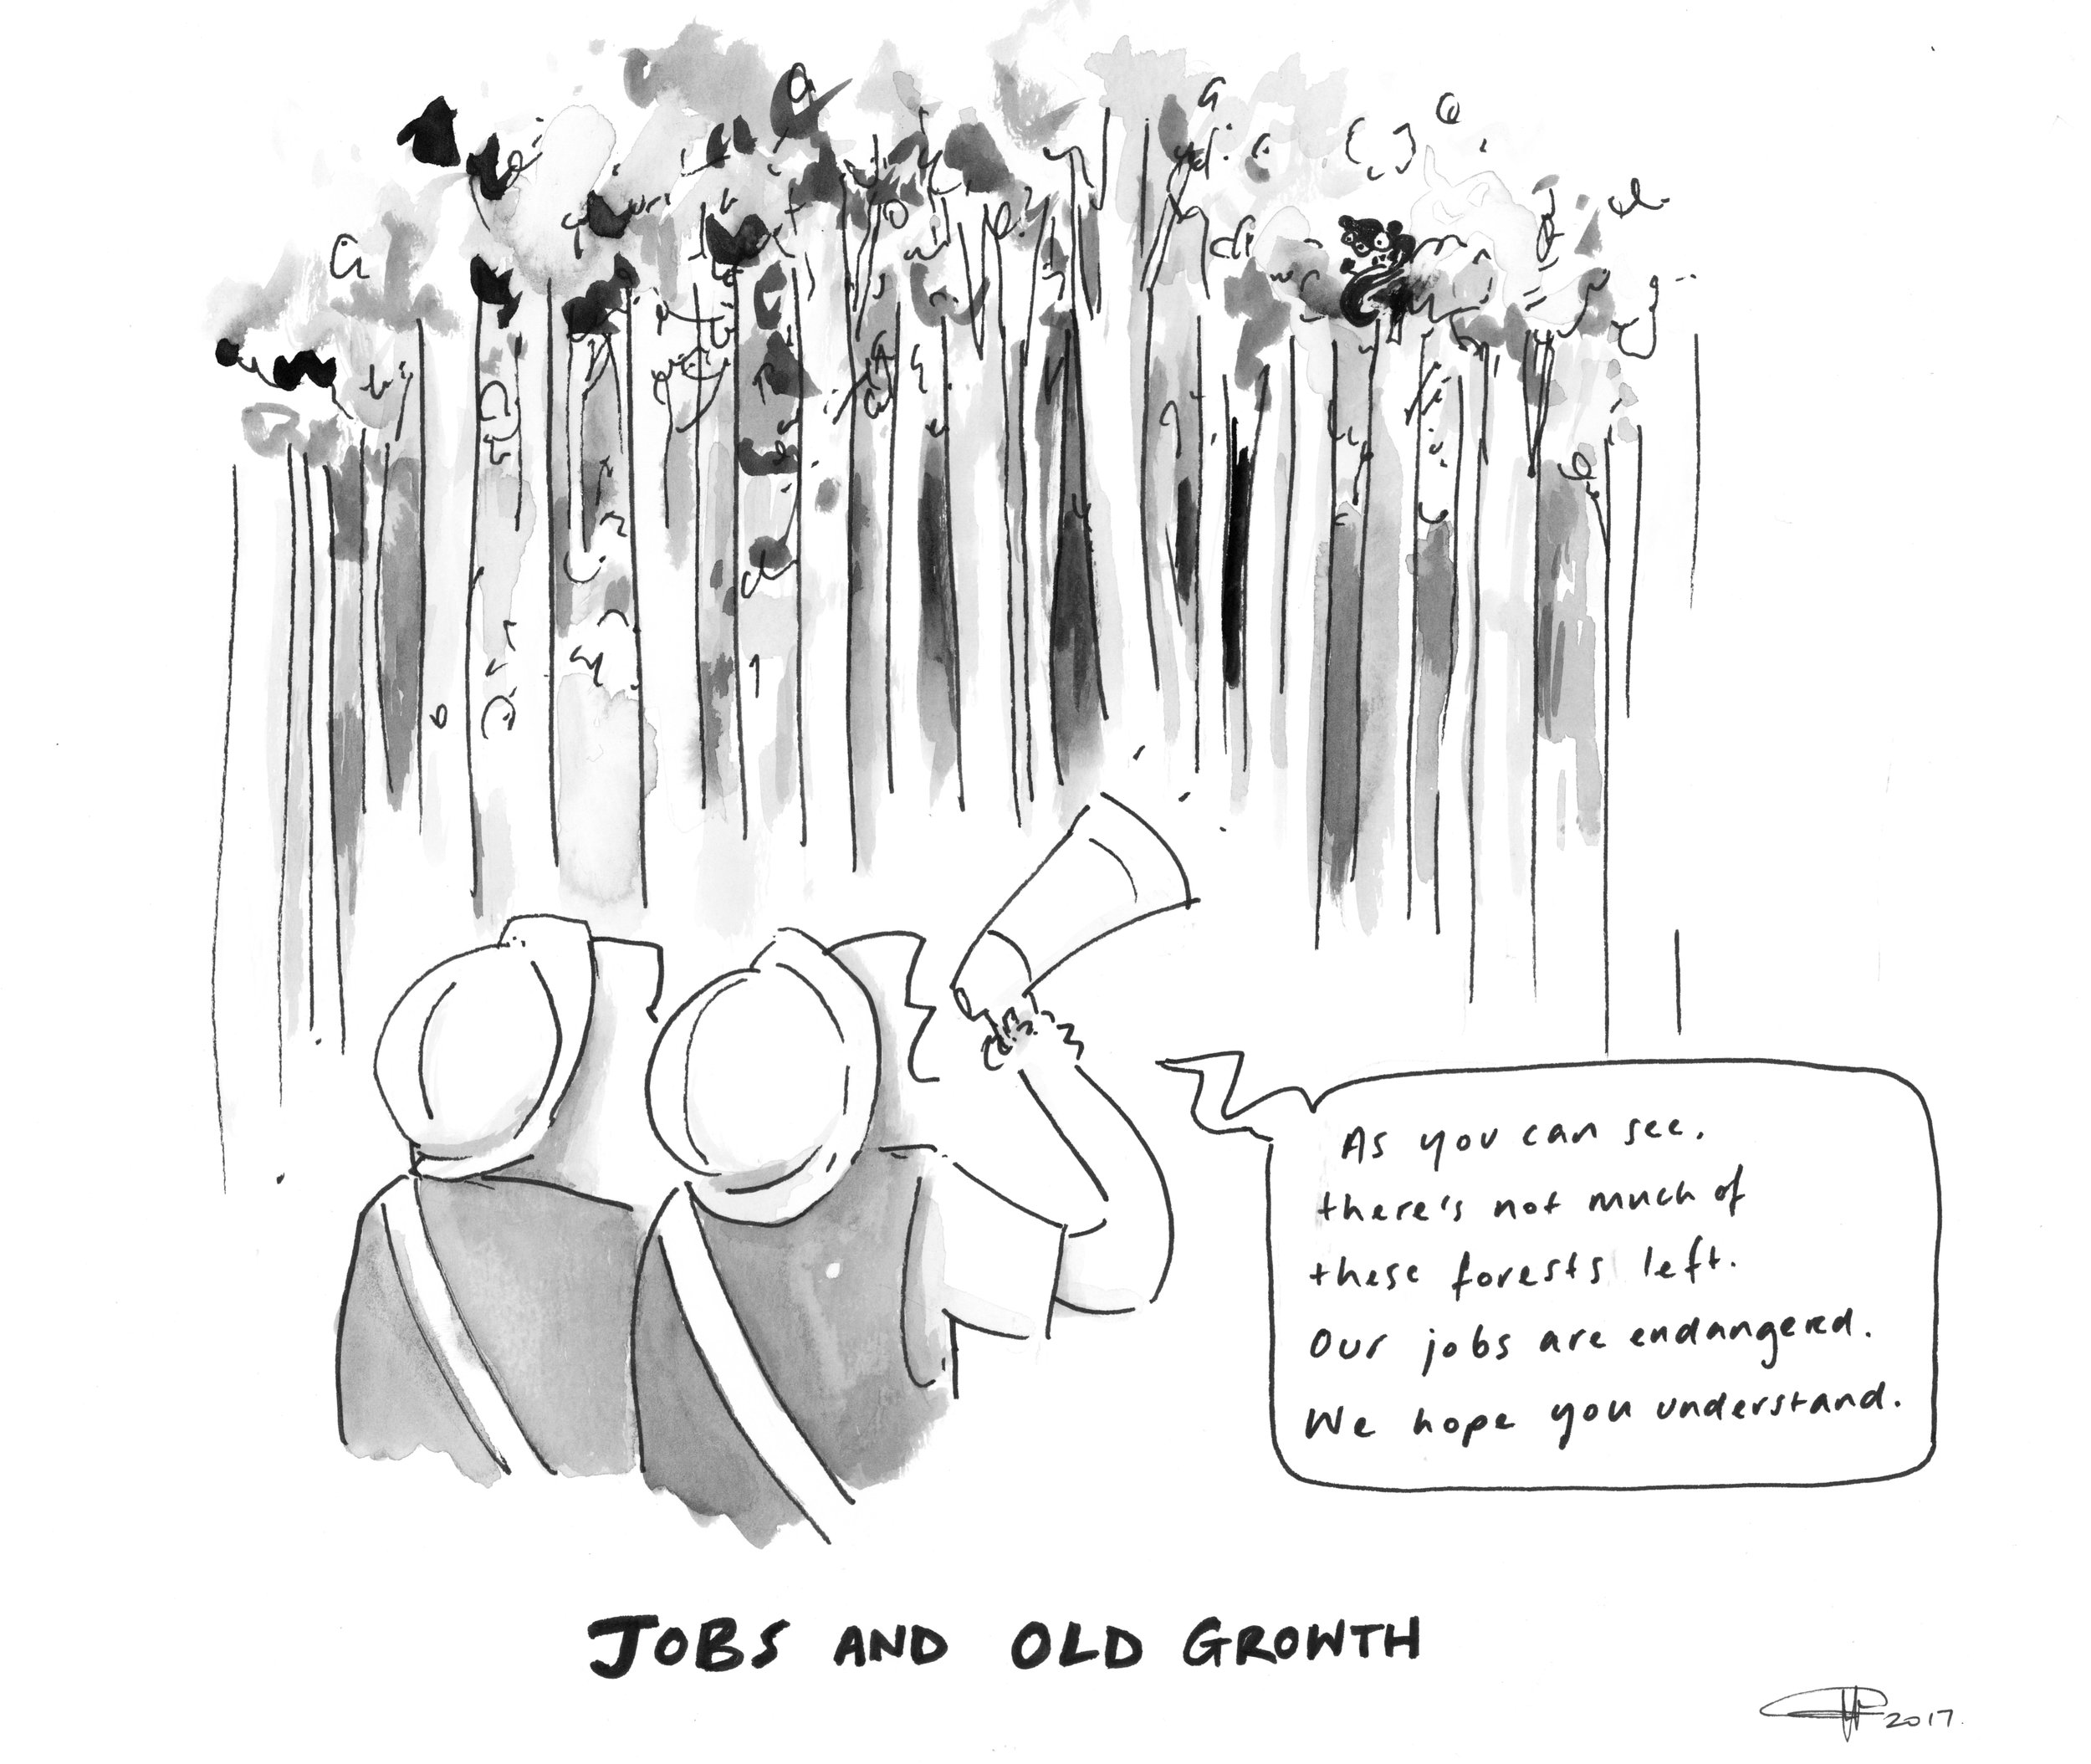 Jobs and Old Growth-2.jpg